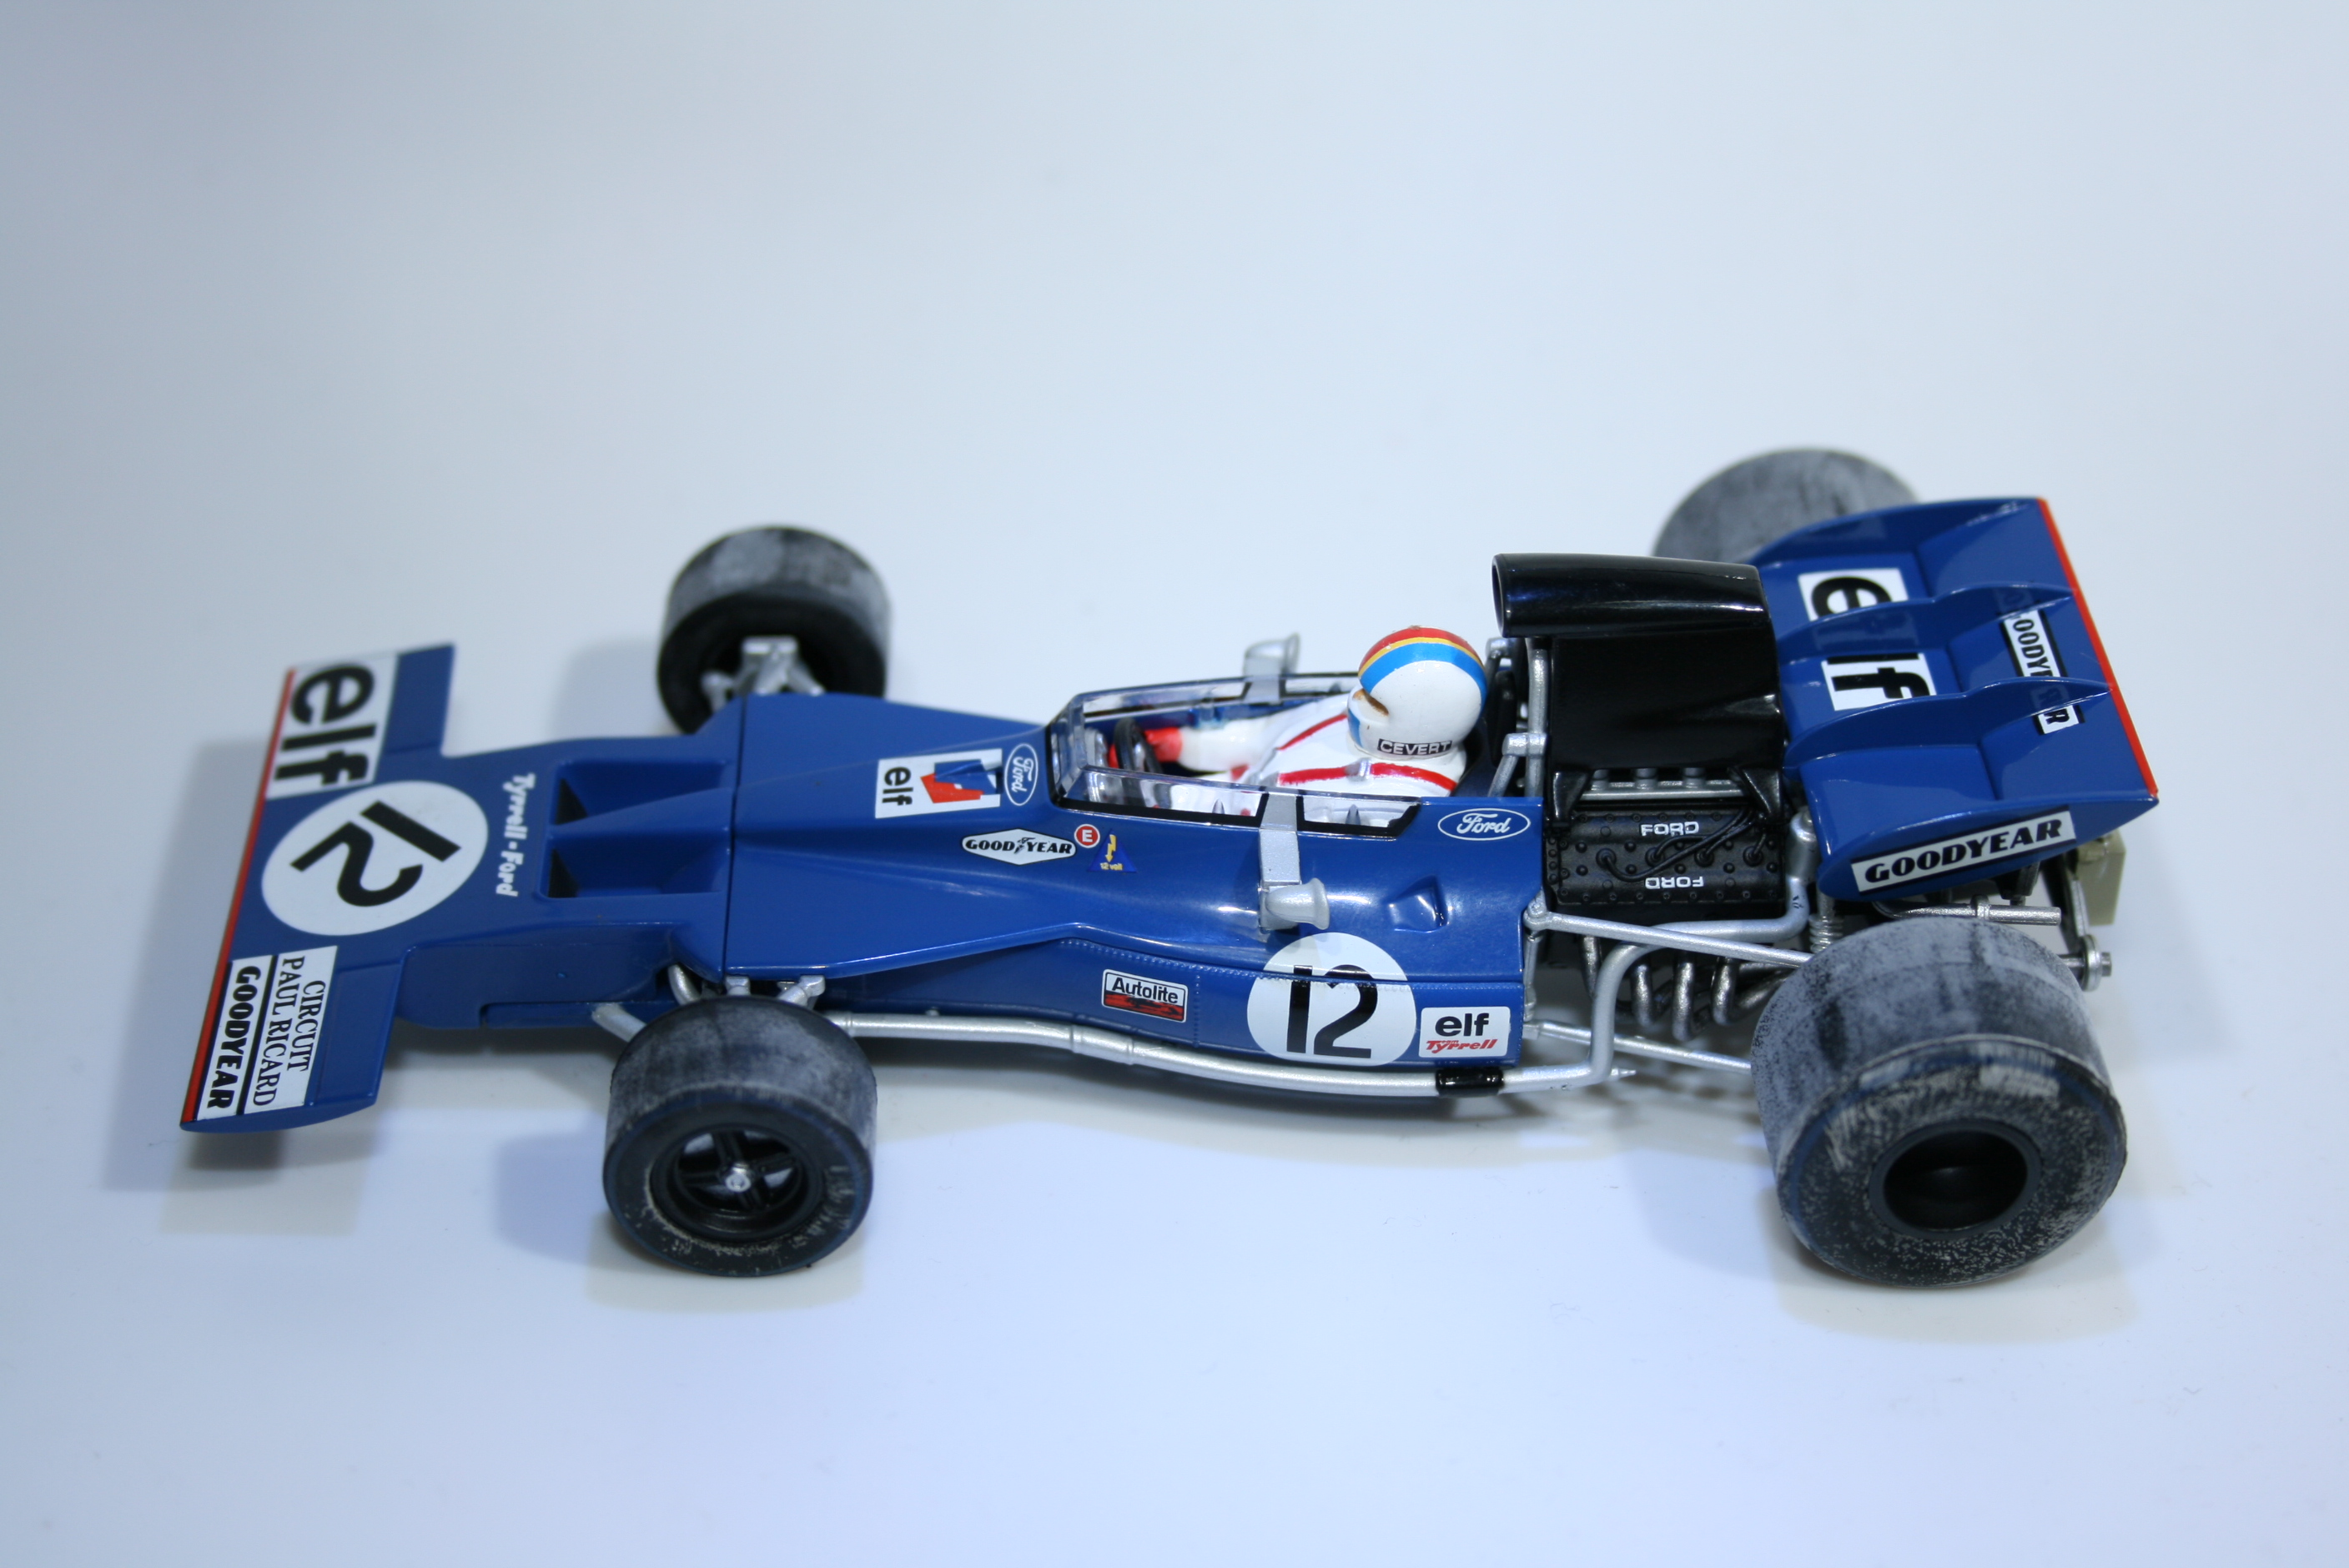 797 Tyrrell 002 1971 P Ricard Scalextric C3482A 2014 Boxed